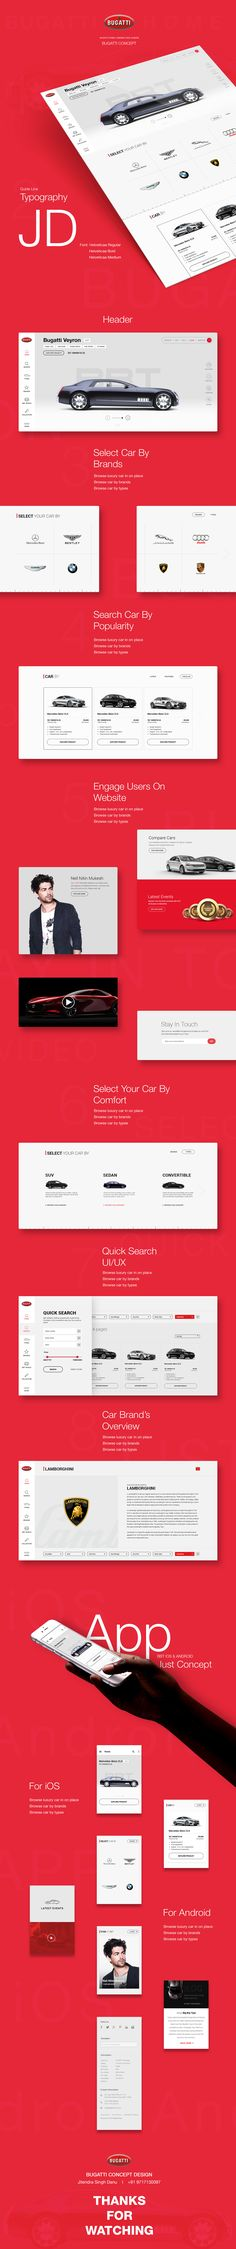 Bugatti Sports Car Manufacturer Web UI/UX by JD Jitendra Singh Danu